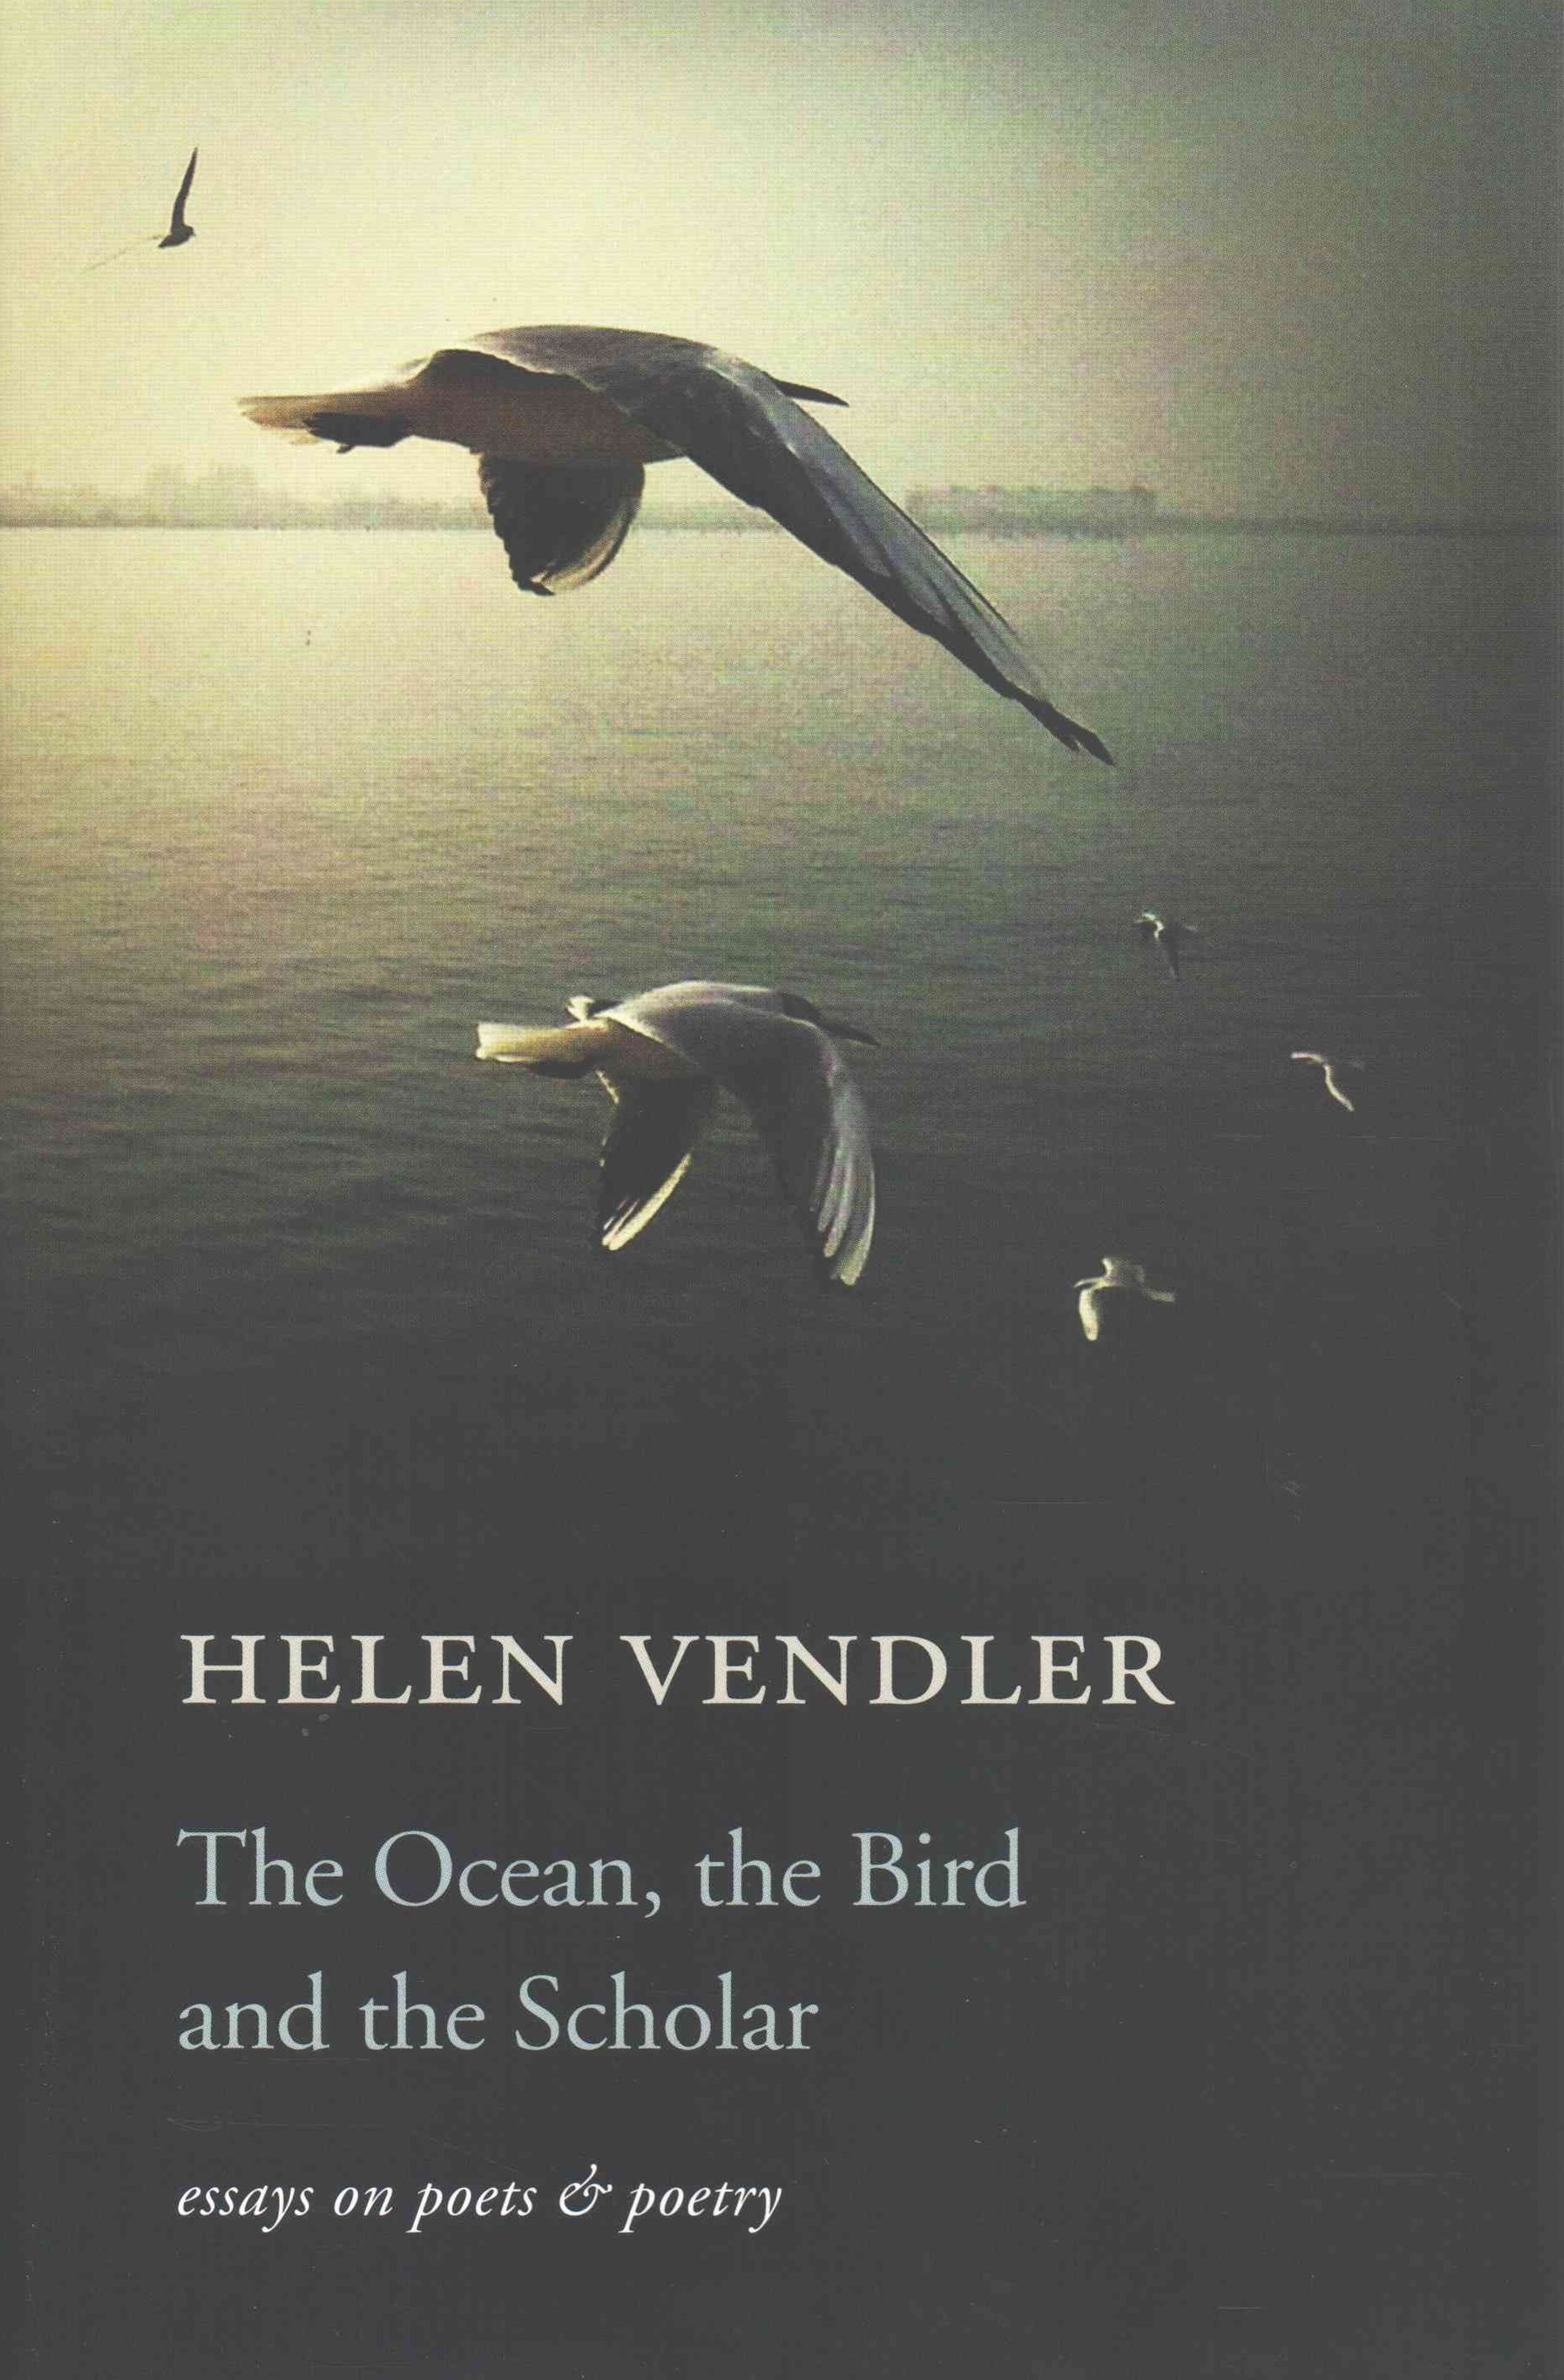 The Ocean, the Bird, and the Scholar